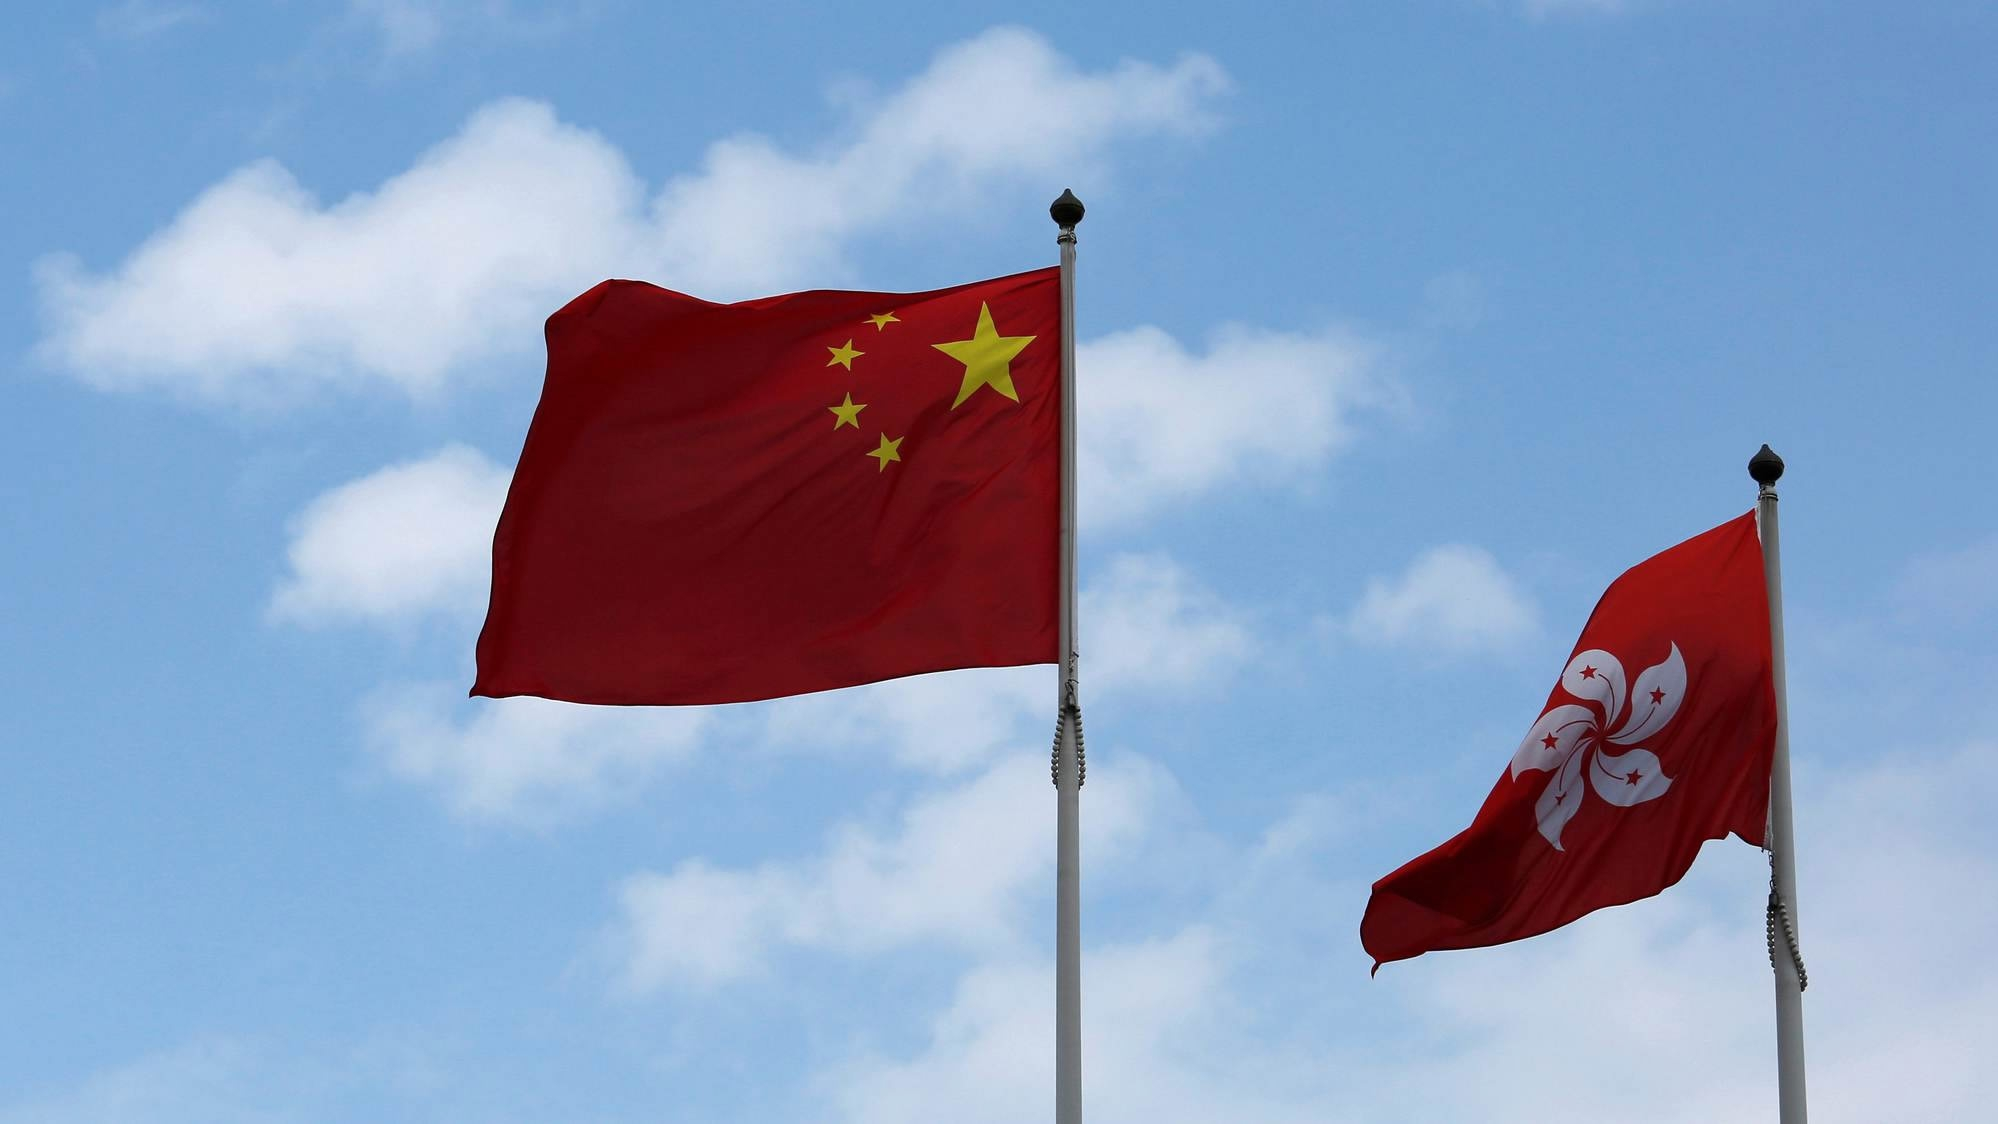 HKSAR gov't warns foreign legislatures not to interfere in its internal affairs